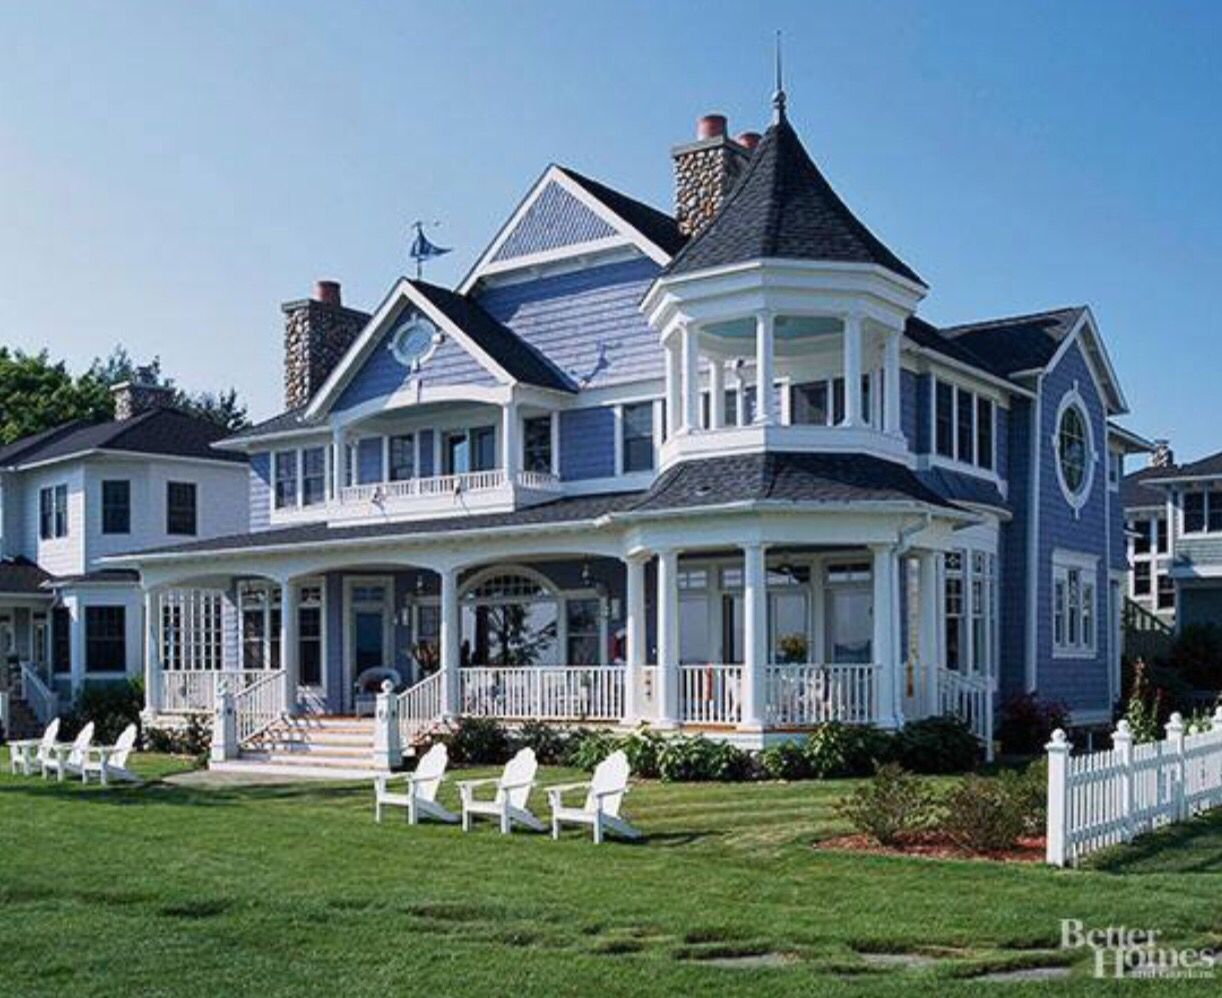 This Is A Victorian House Because Of The Tower With Many Balconies